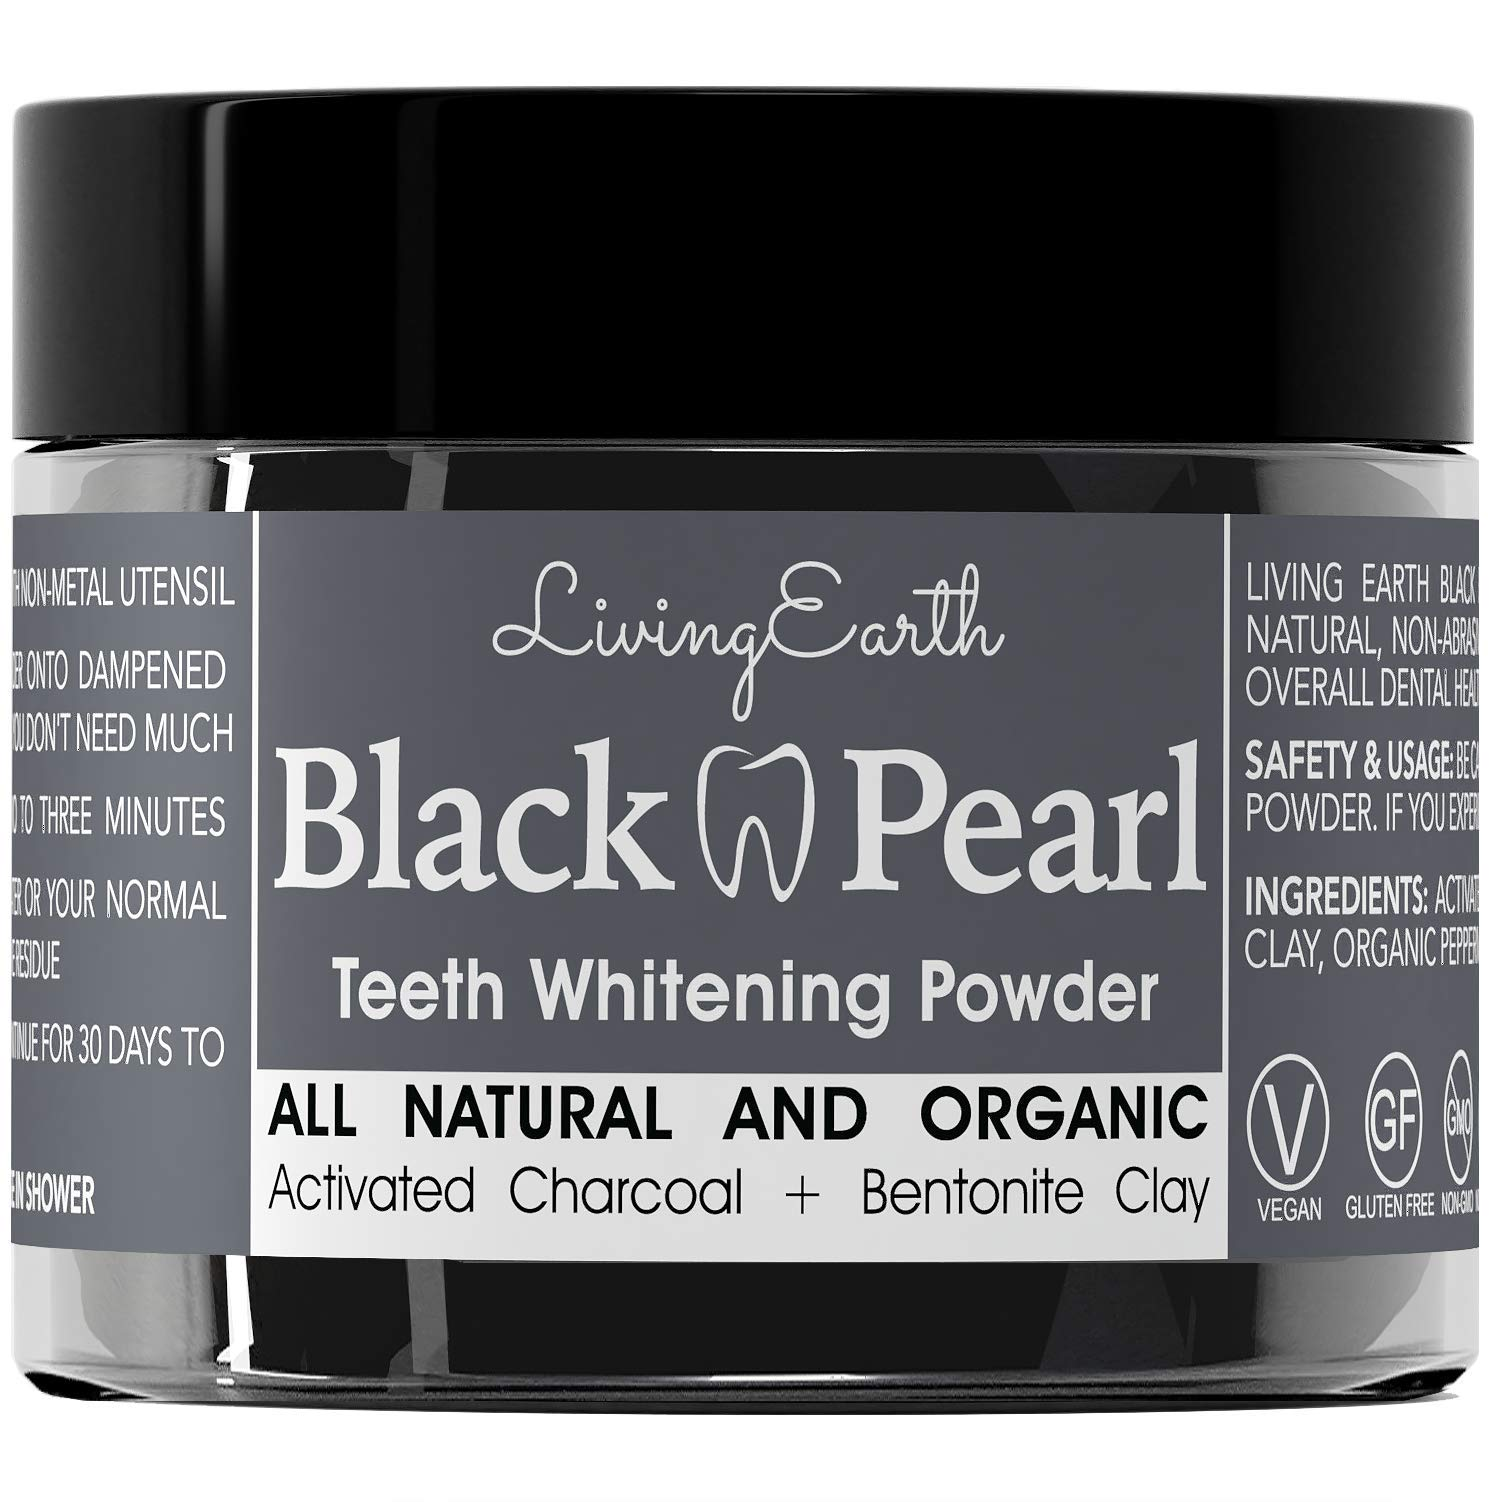 Black Pearl Activated Charcoal Teeth Whitening Toothpaste - Organic Coconut Charcoal - Freshens Breath - Remineralizing Tooth Powder - Anti-Bacterial - Made In USA - Glass Jar